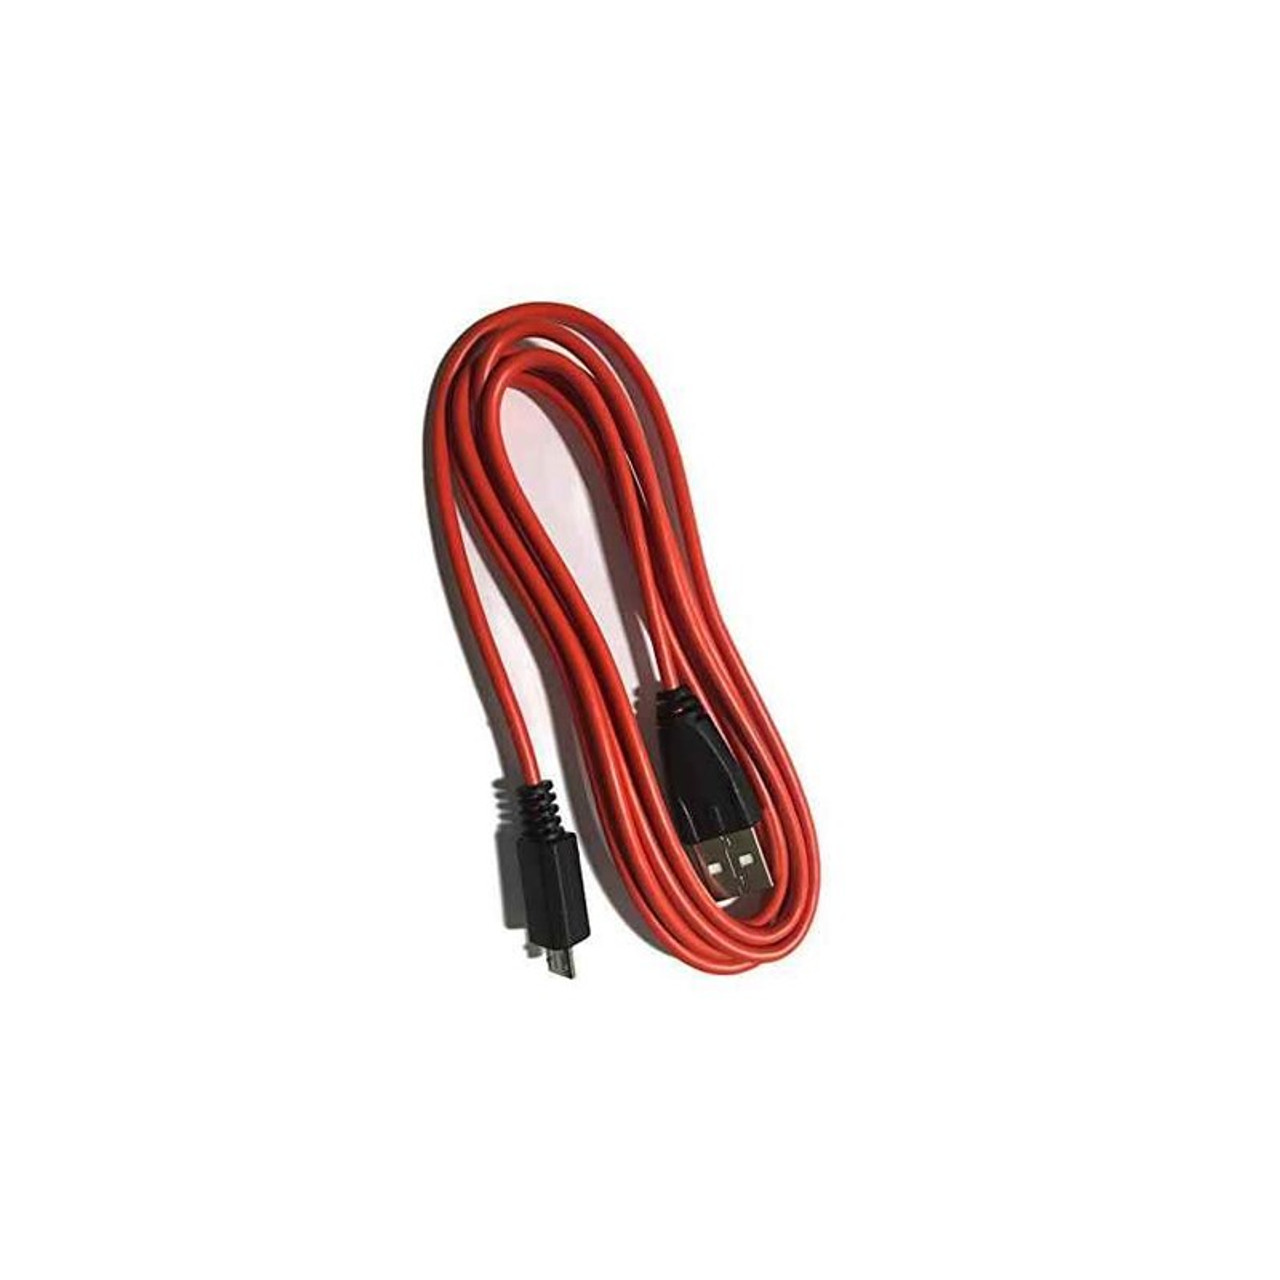 Image for Jabra Evolve 65 Micro USB to USB Cable CX Computer Superstore